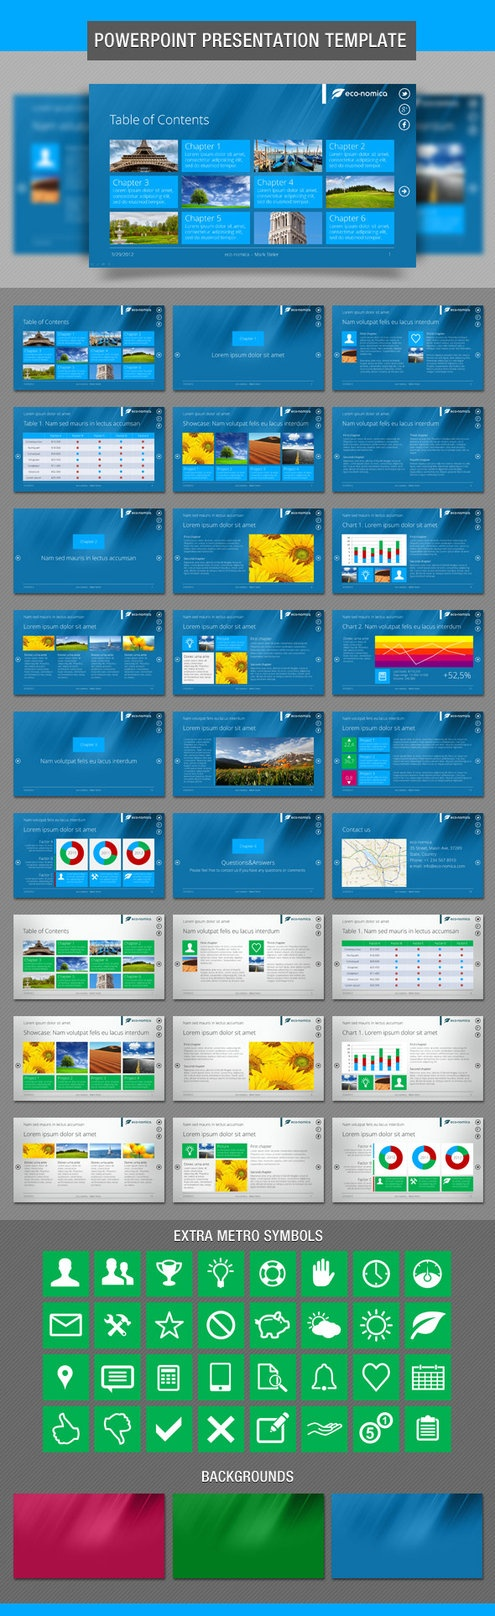 Metro style PowerPoint Presentation Template